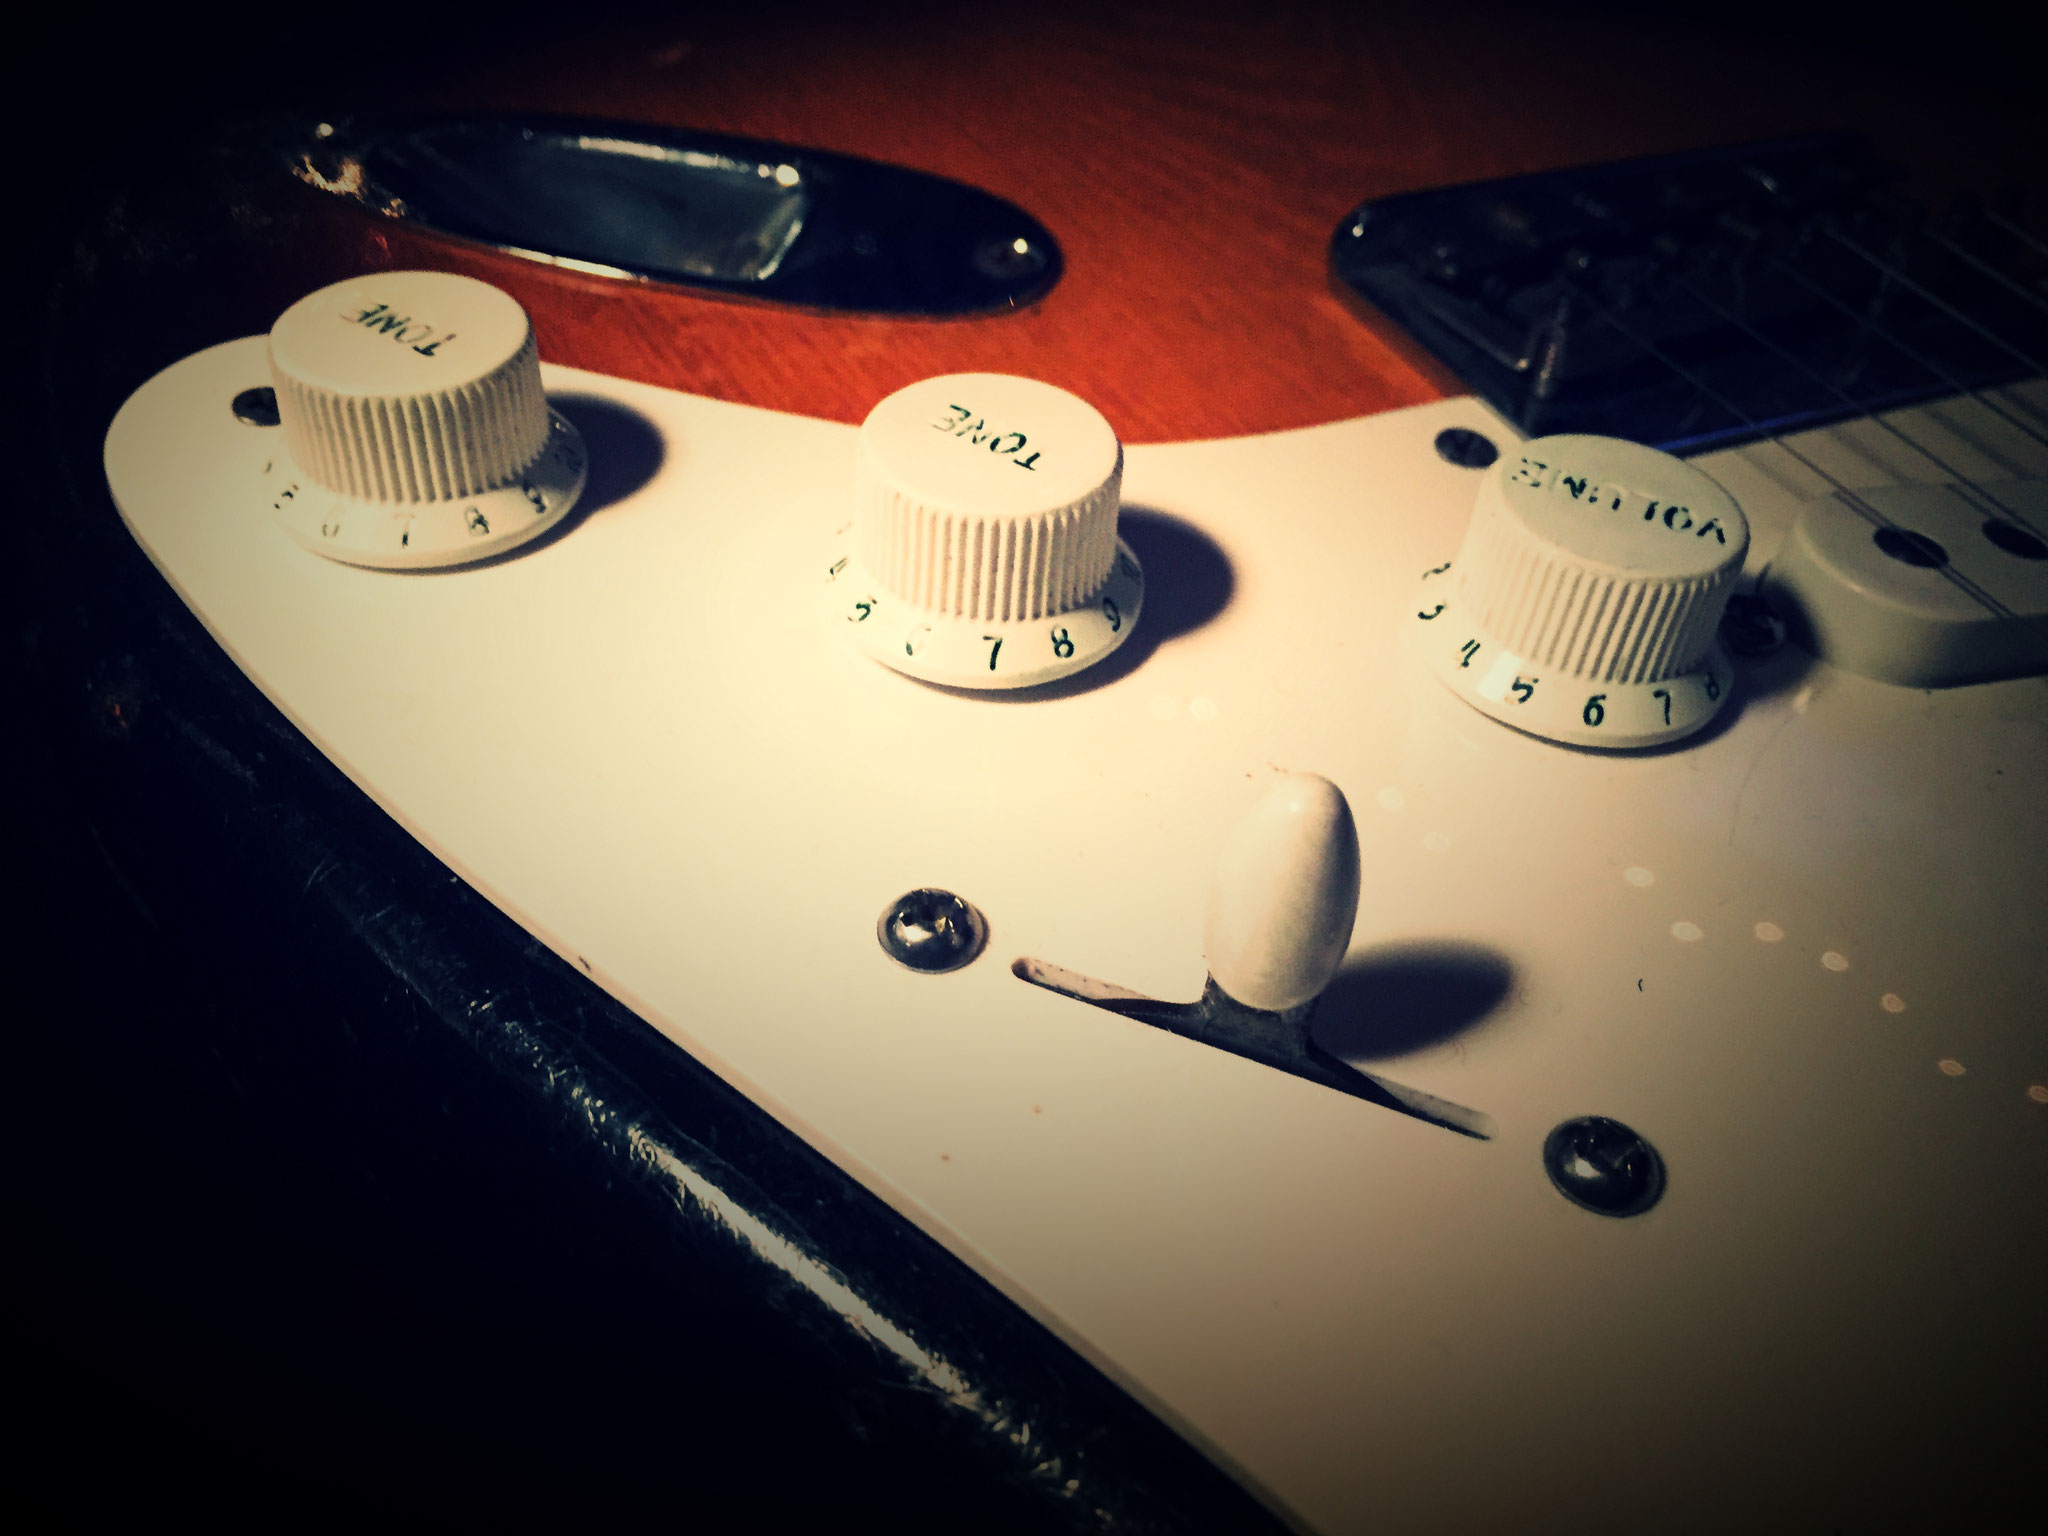 Original Fender Stratocaster Controls